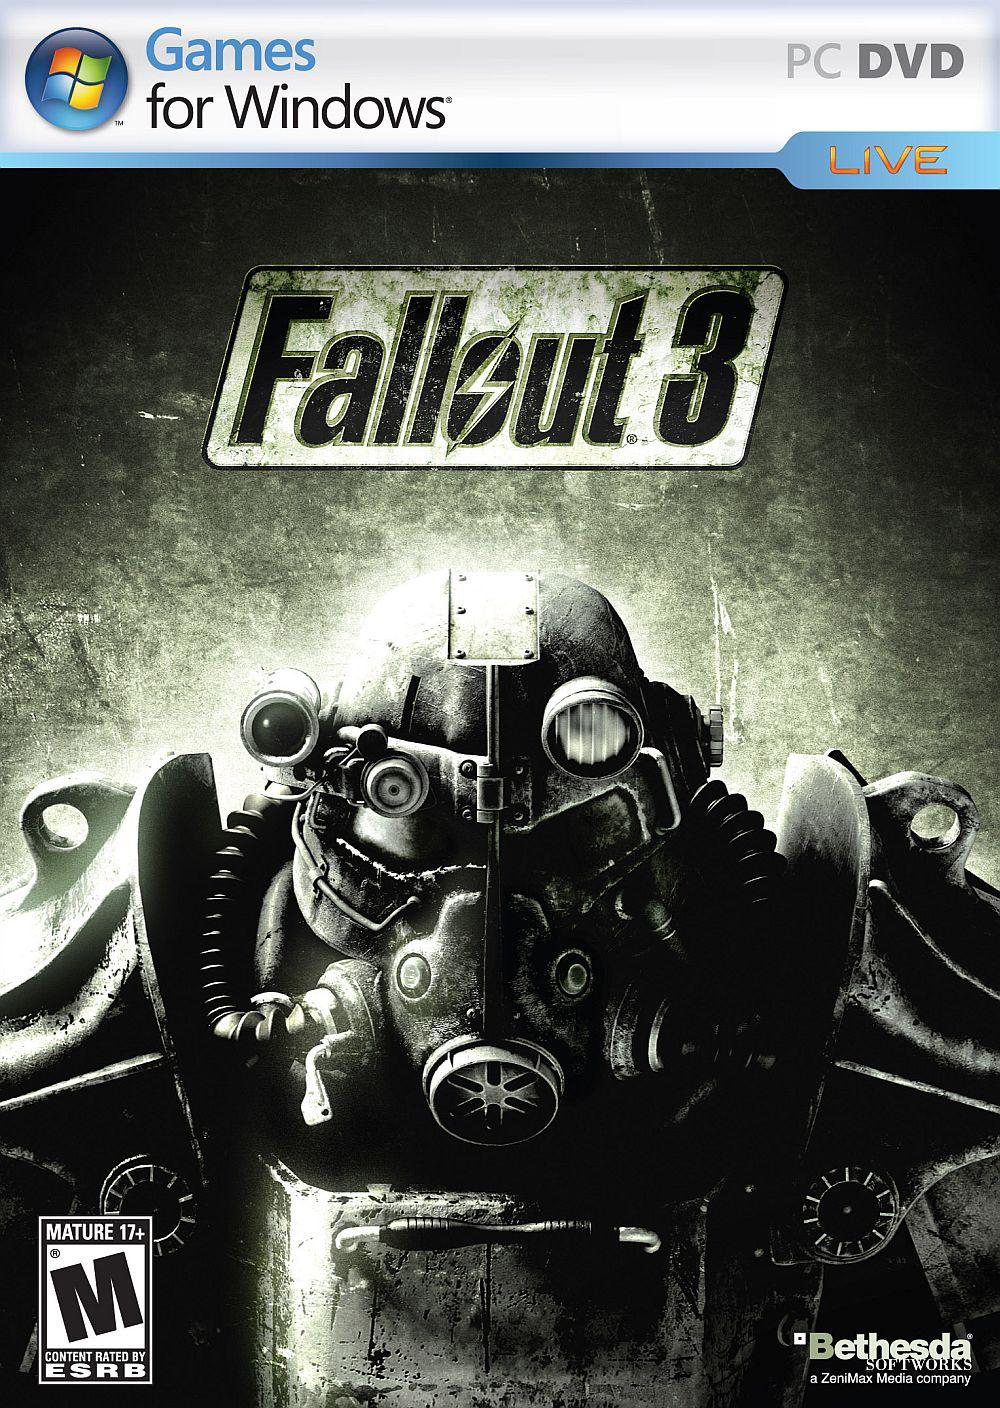 http://images1.wikia.nocookie.net/__cb20091231082209/fallout/images/8/86/Fallout3_Cover_Art_PC.jpg